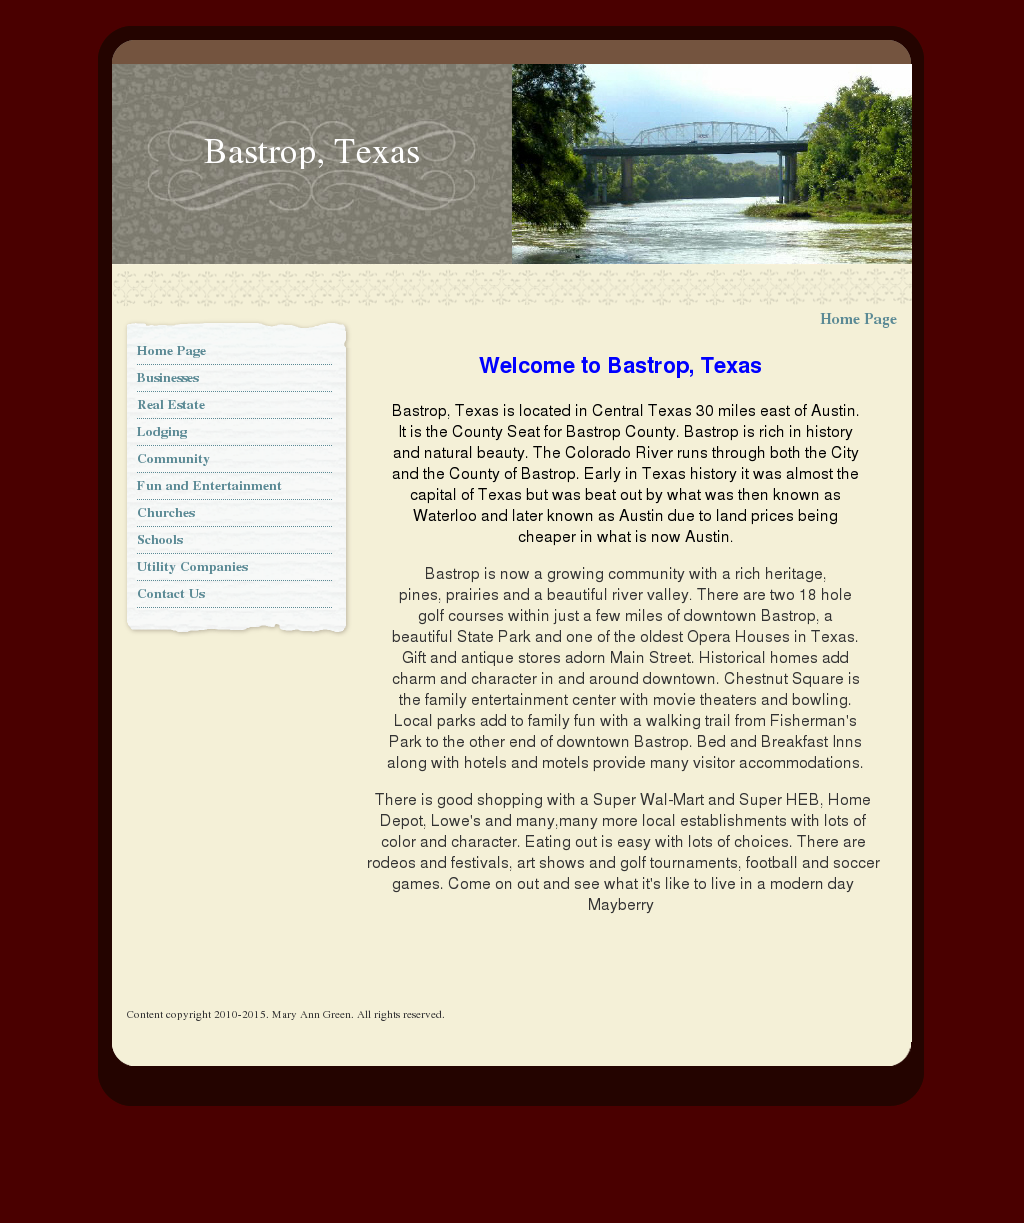 City Of Bastrop Tx S Competitors Revenue Number Of Employees Funding Acquisitions News Owler Company Profile